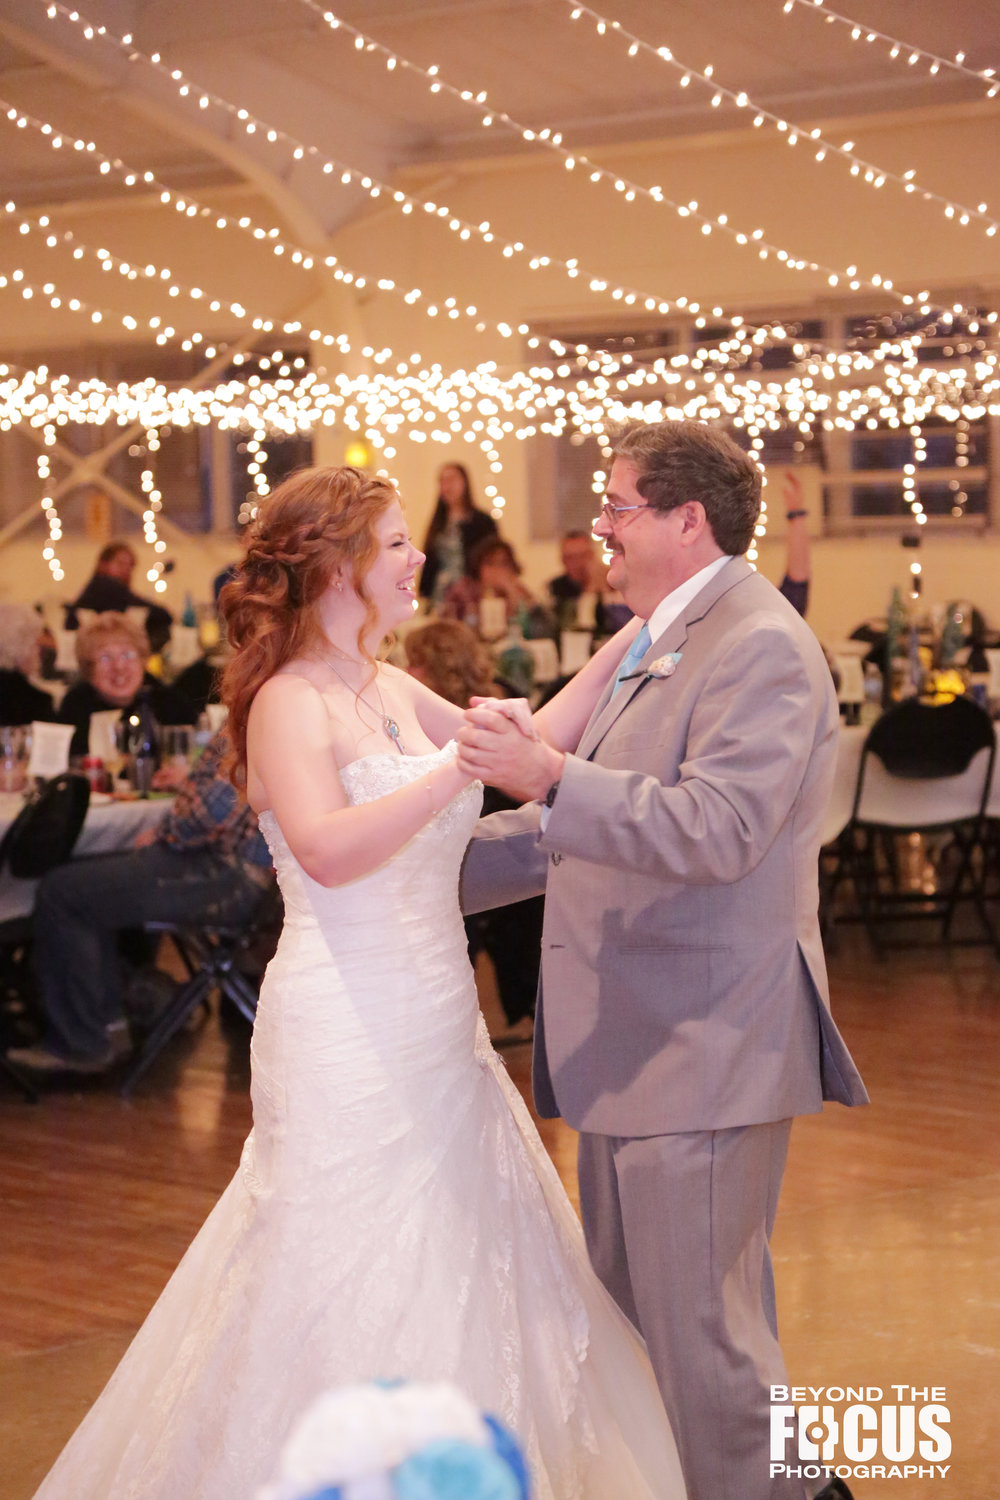 Alex_Katie_WeddingReception__98.jpg